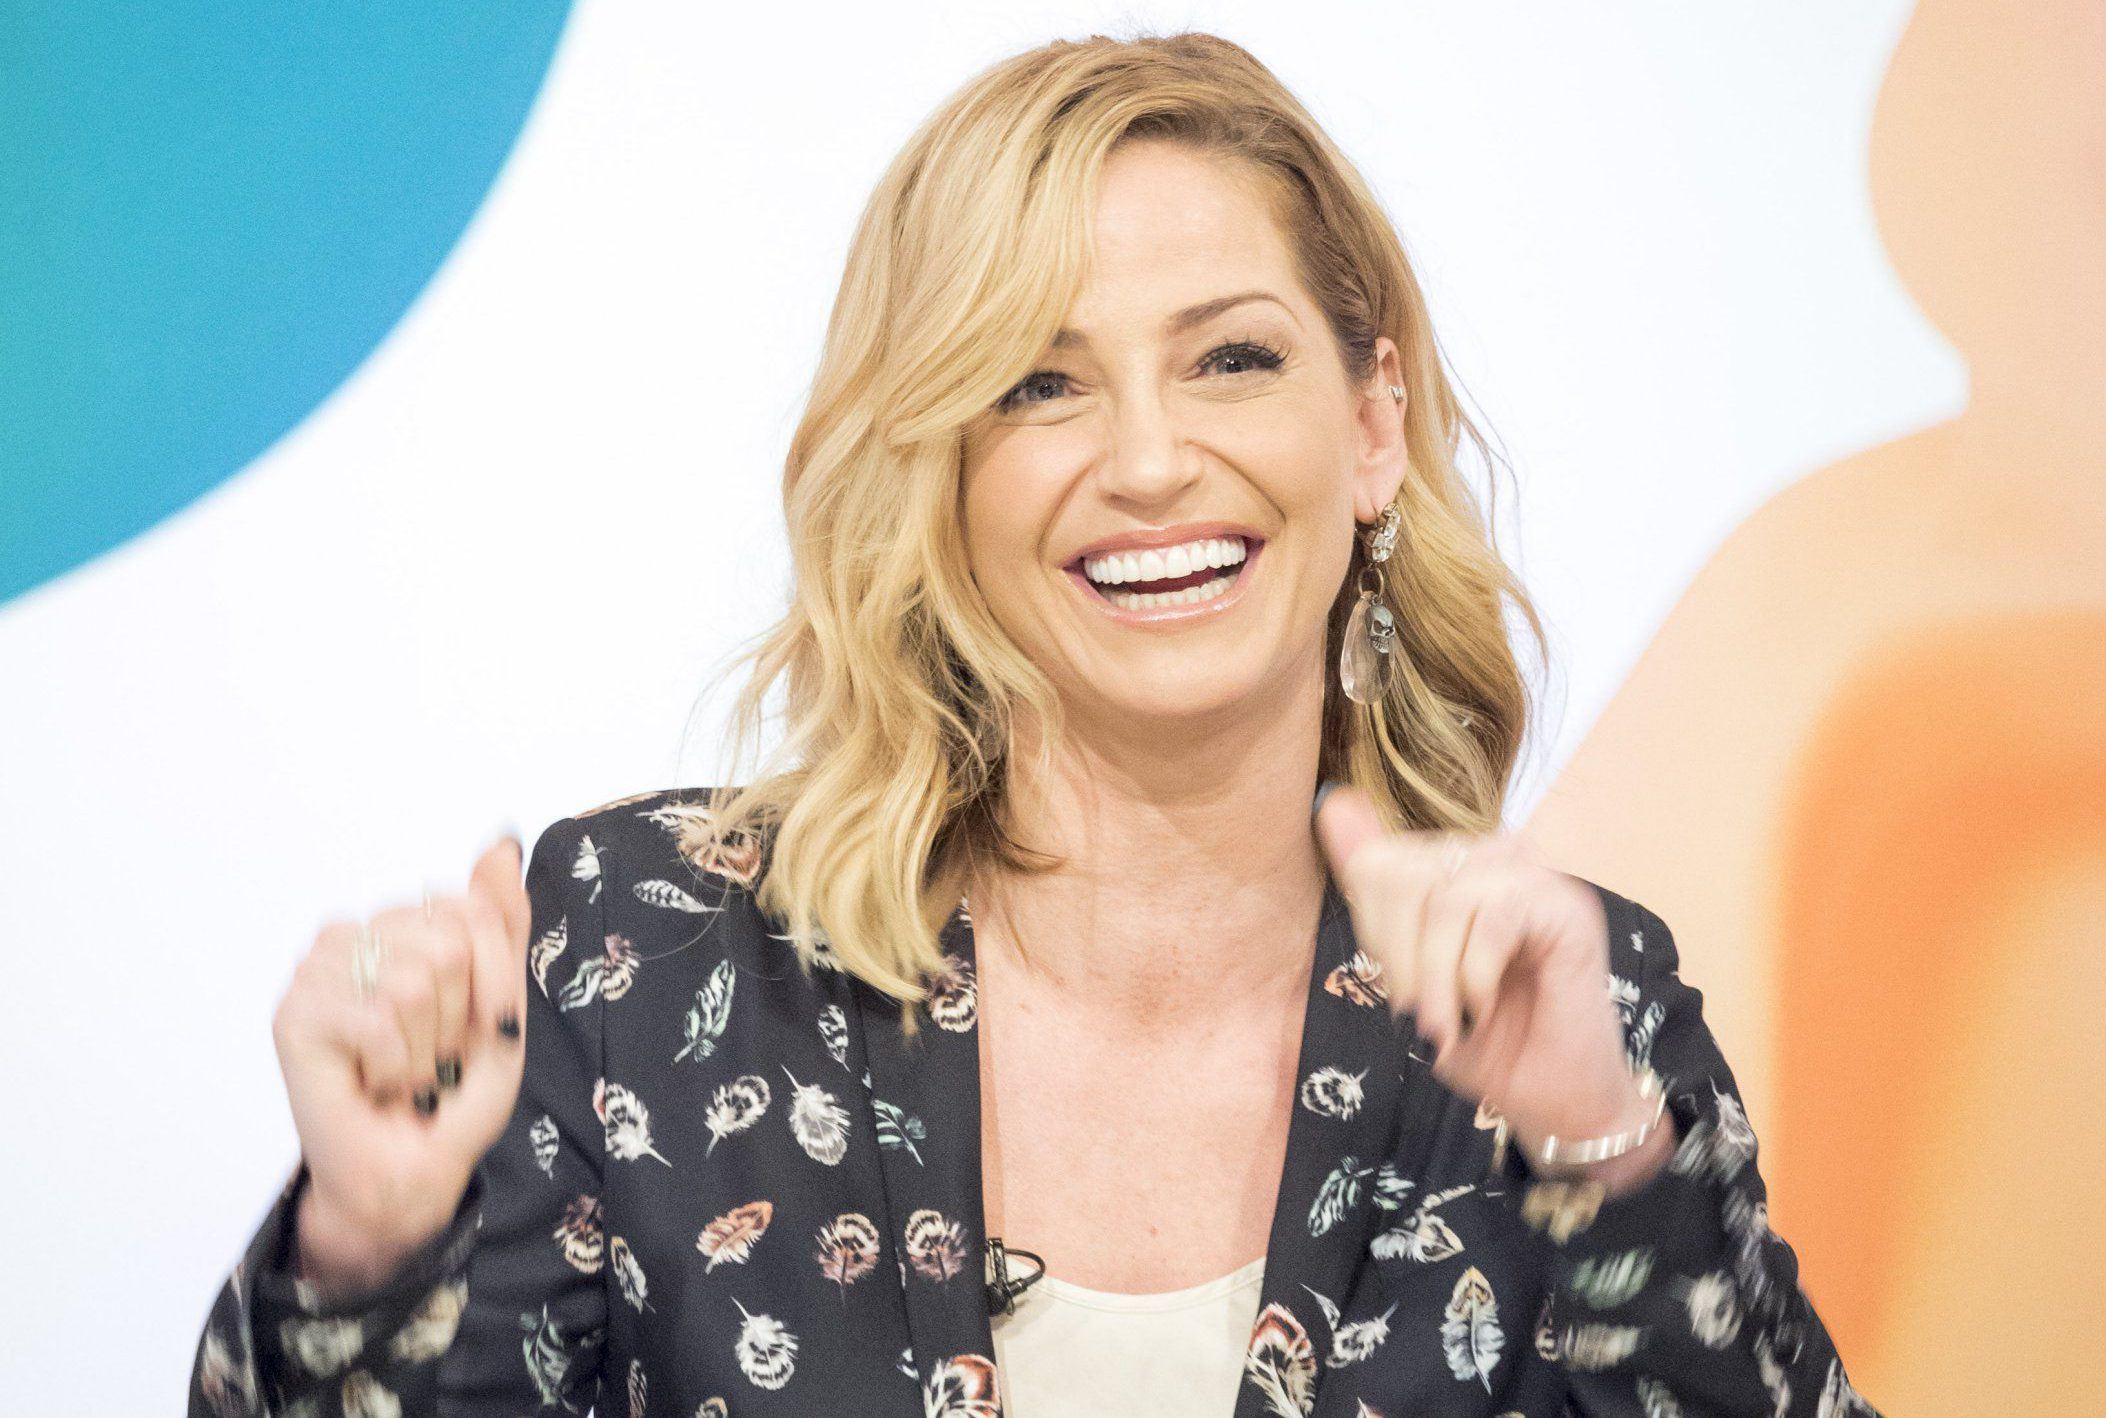 Sarah Harding defends her boozing in Celebrity Big Brother: 'It was made out to be a lot worse than it was'